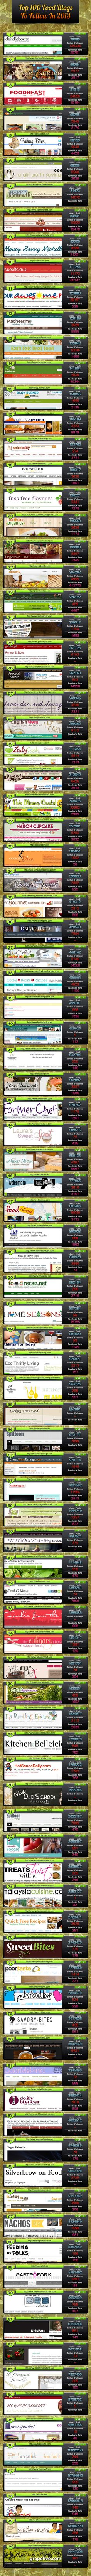 If you're a food lover and looking for any food recipe online then you can find all this stuff from the blogs mentioned in the above infographic. Th